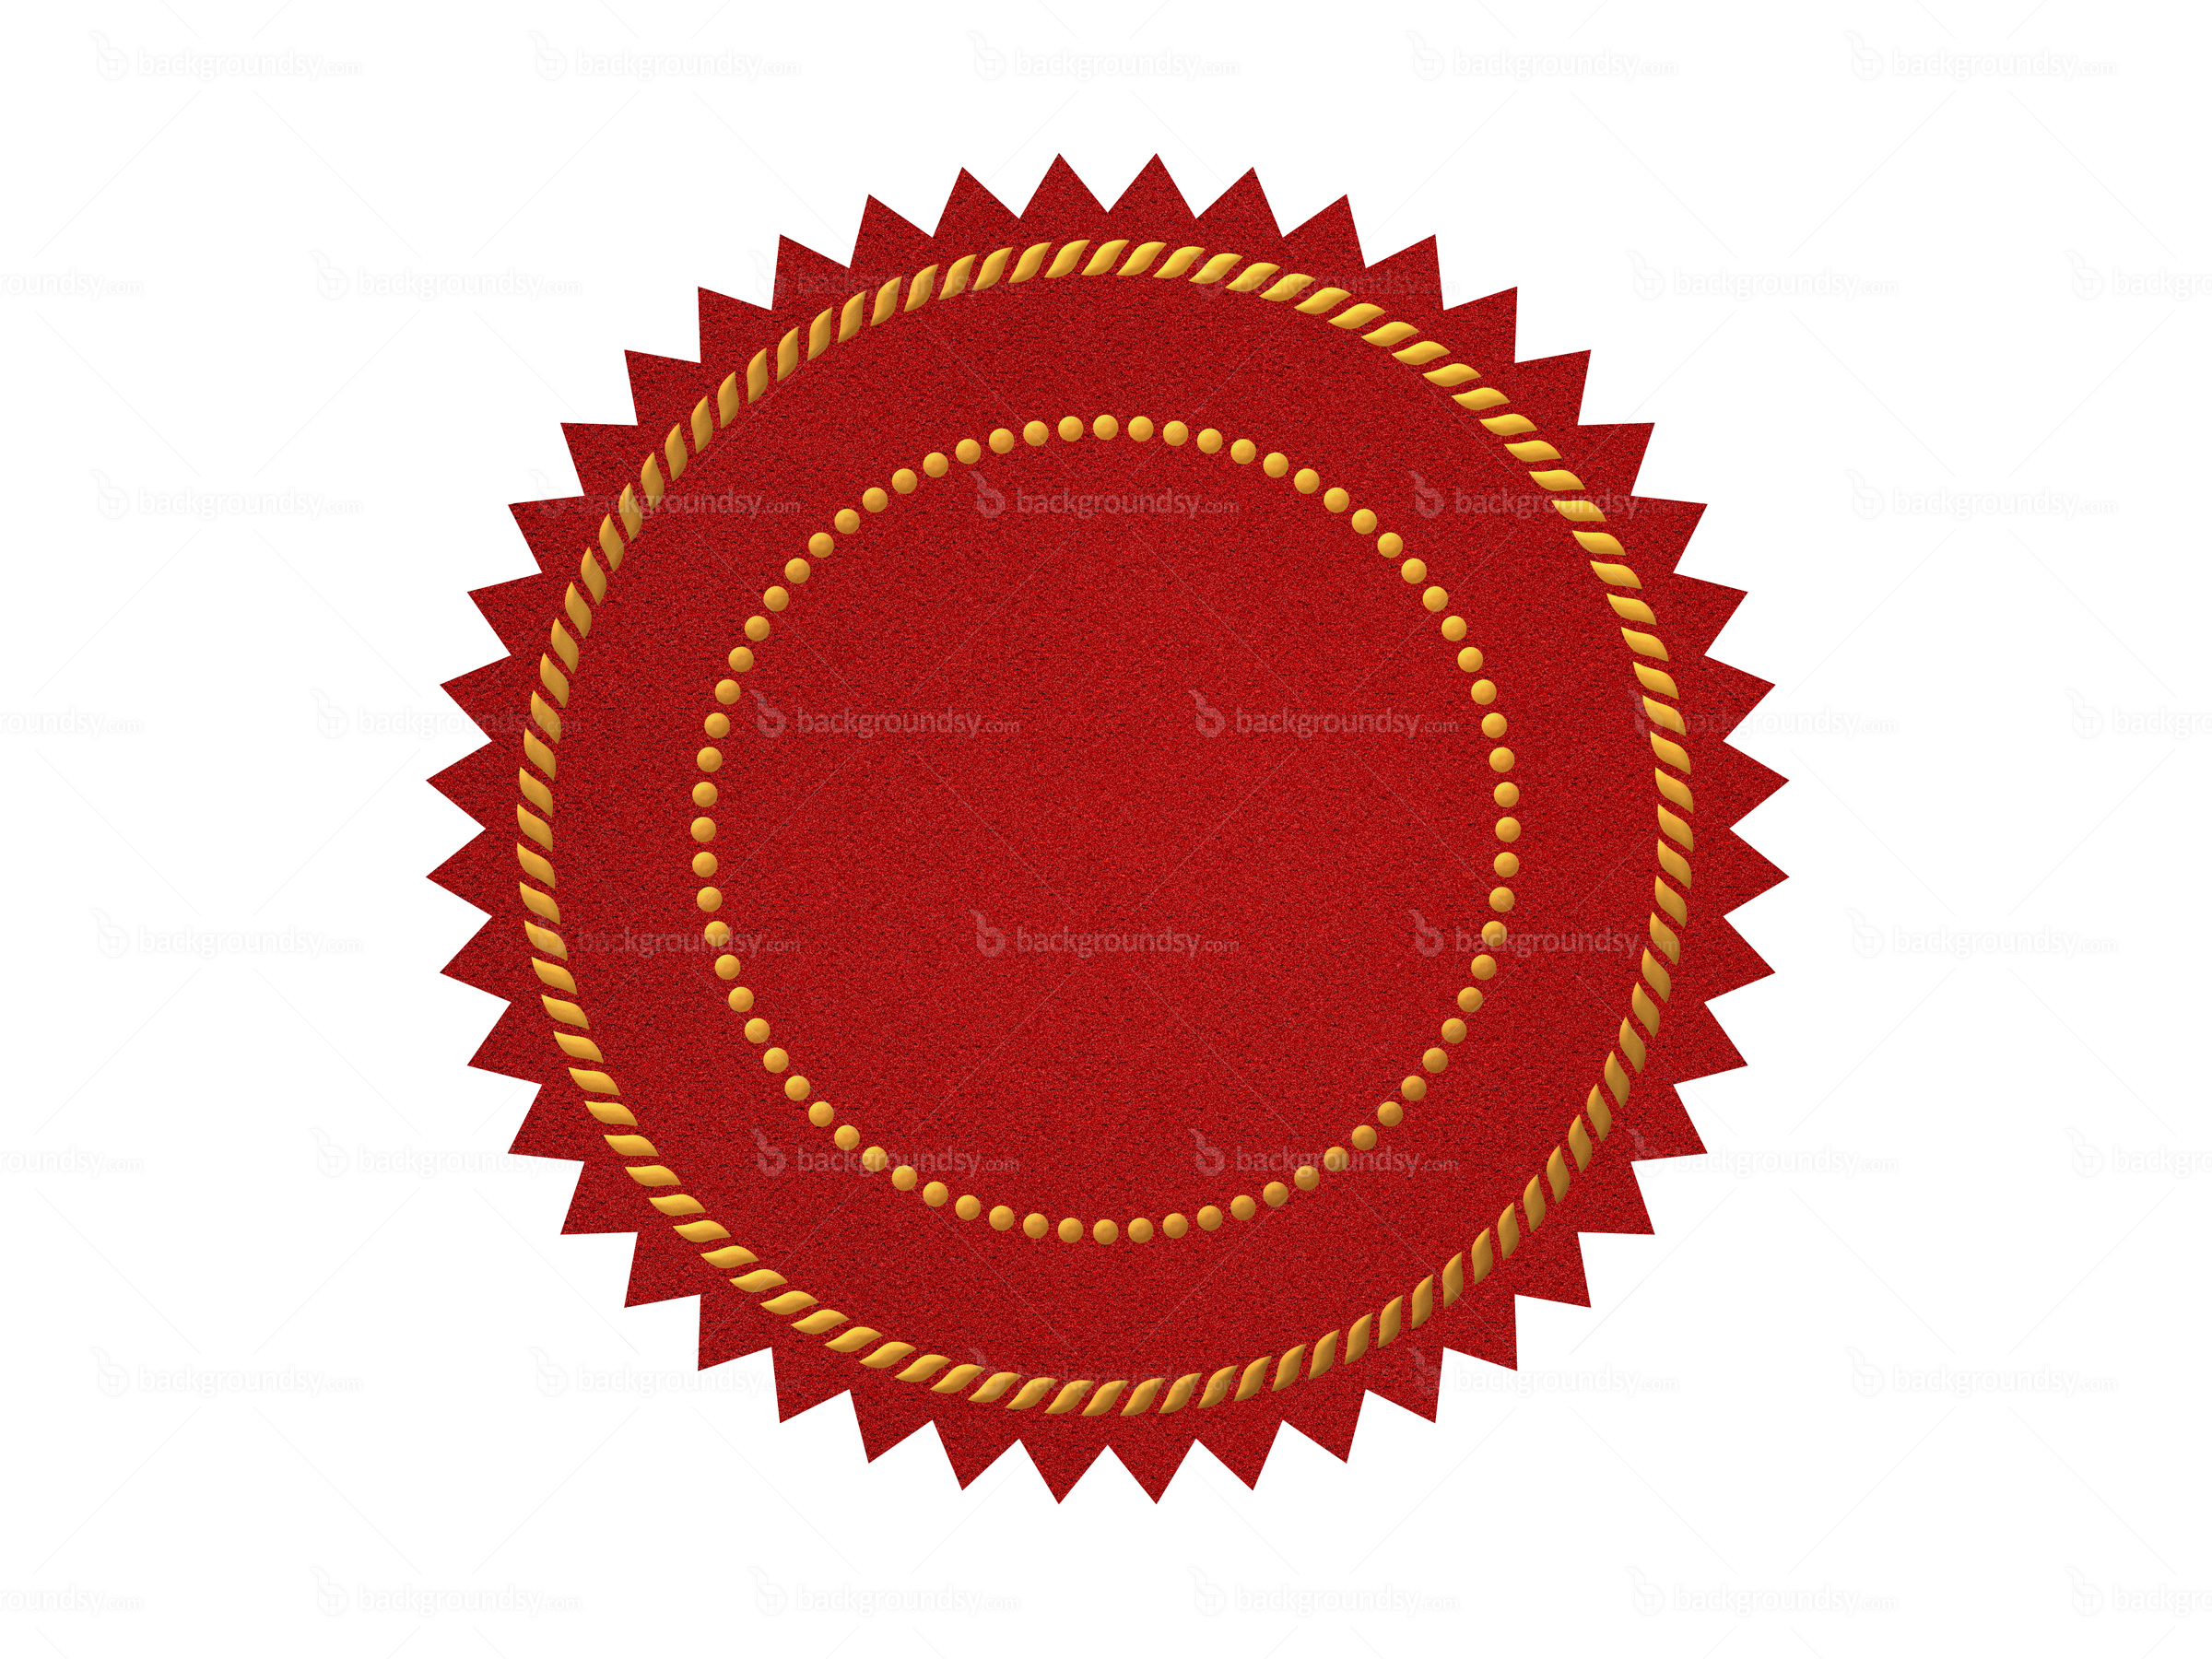 Award Badge Template Search Results Psd Free Image